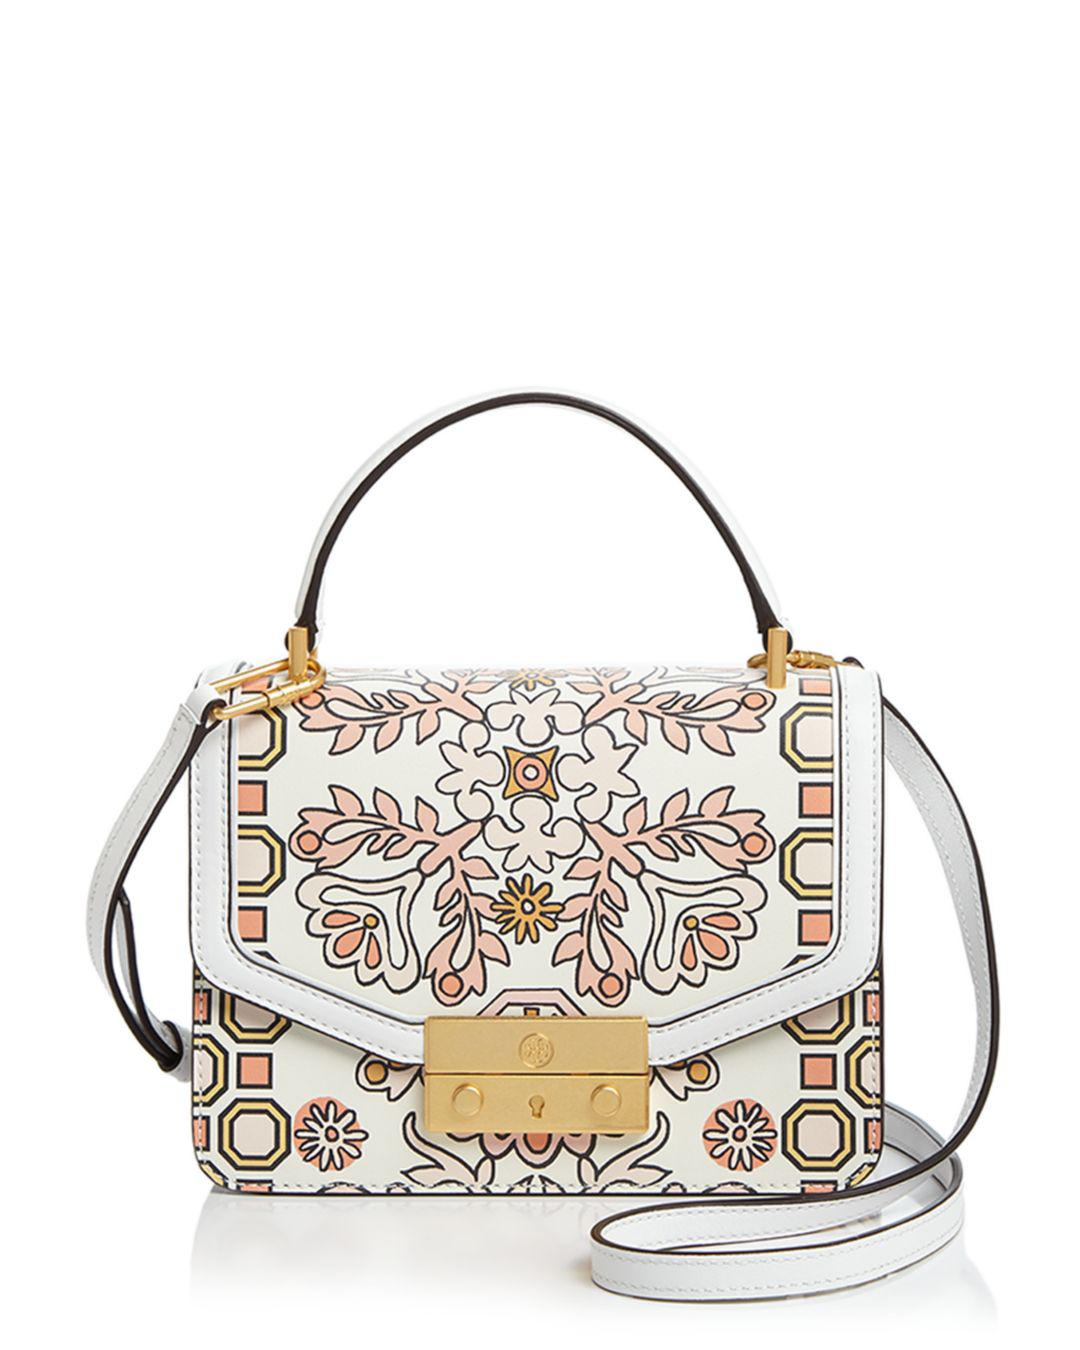 76d773bf07bd Lyst - Tory Burch Juliette Printed Mini Leather Satchel